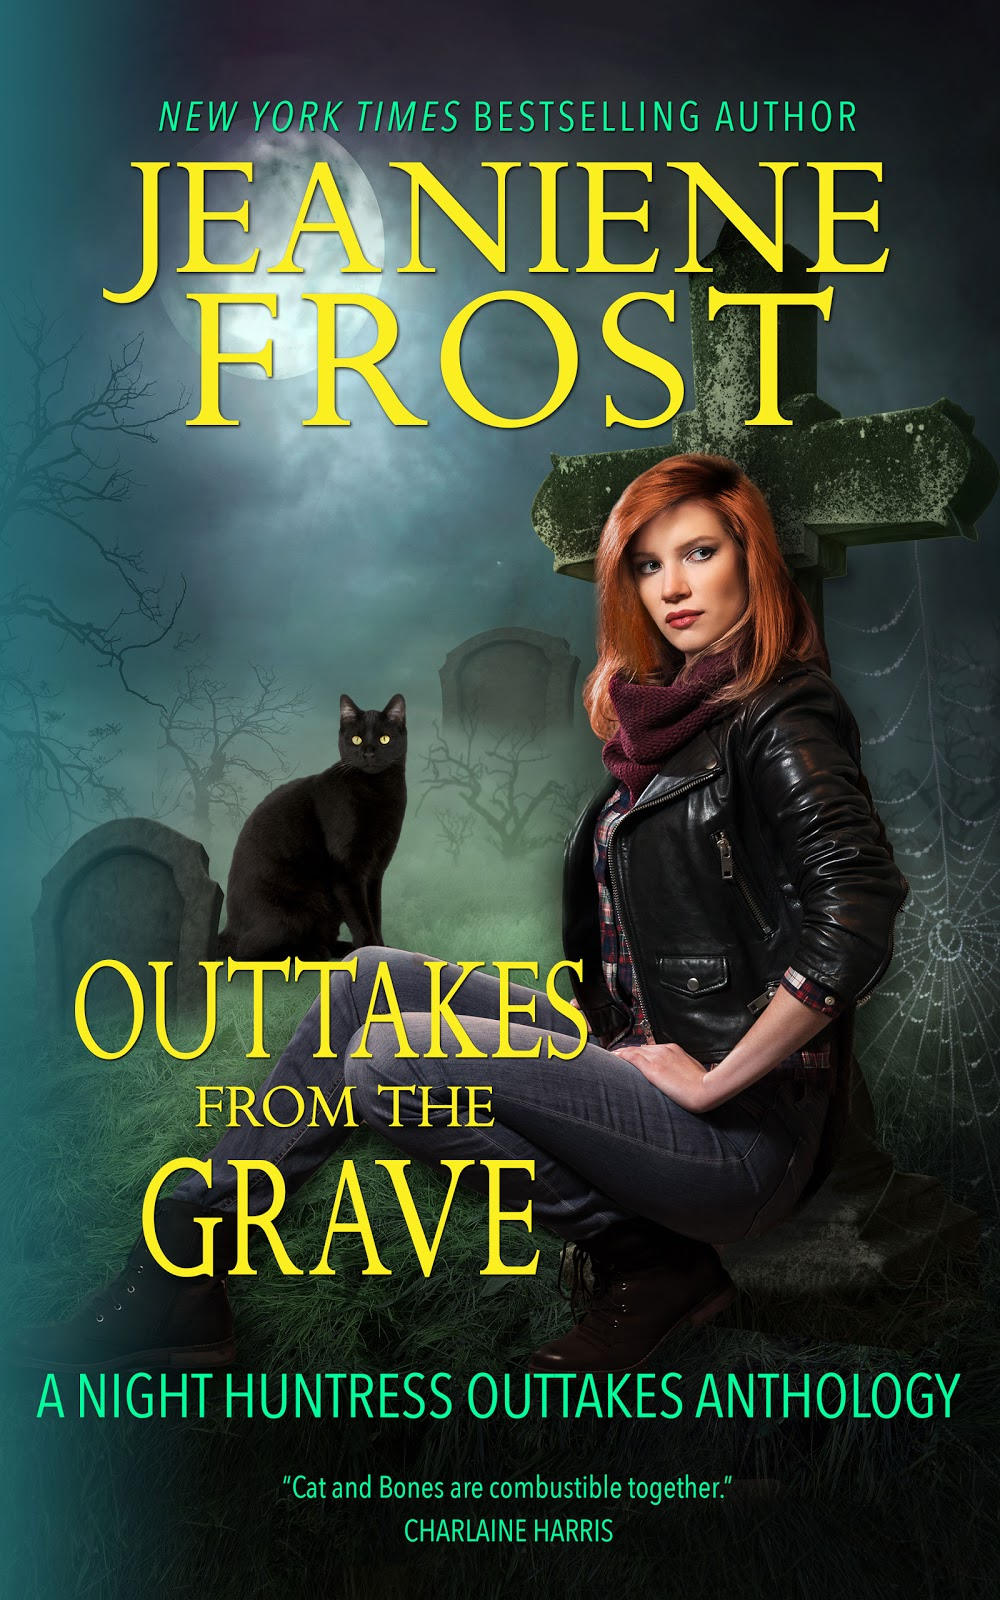 Outtakes from the Grave (Night Huntress 06) by Jeaniene Frost